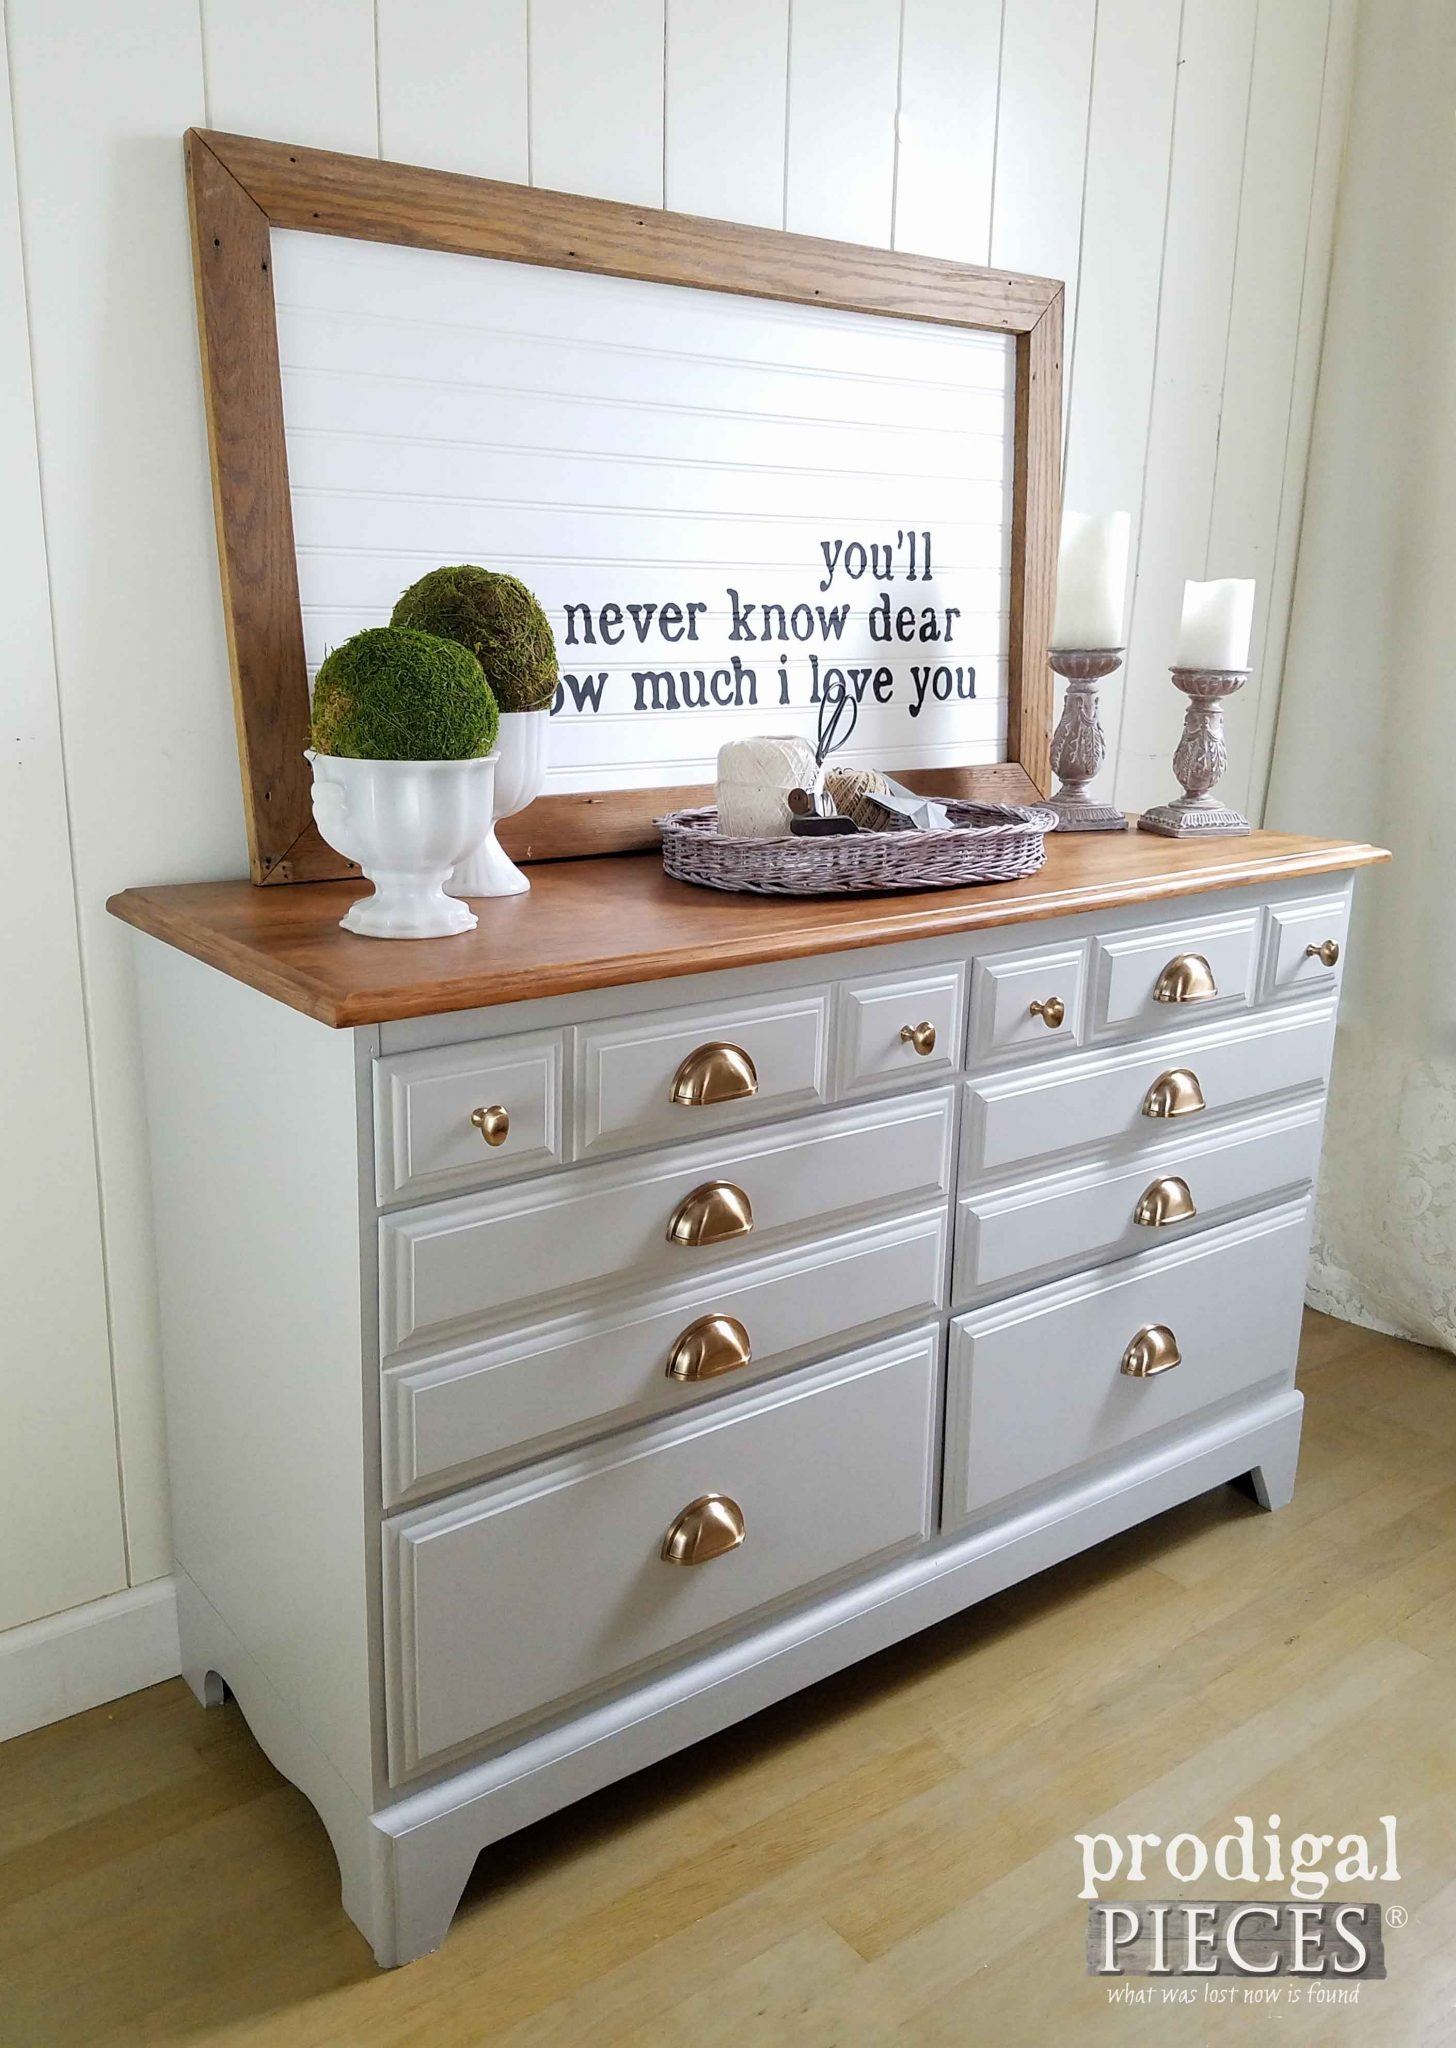 An outdated dresser gets modern farmhouse makeover by Prodigal Pieces | prodigalpieces.com